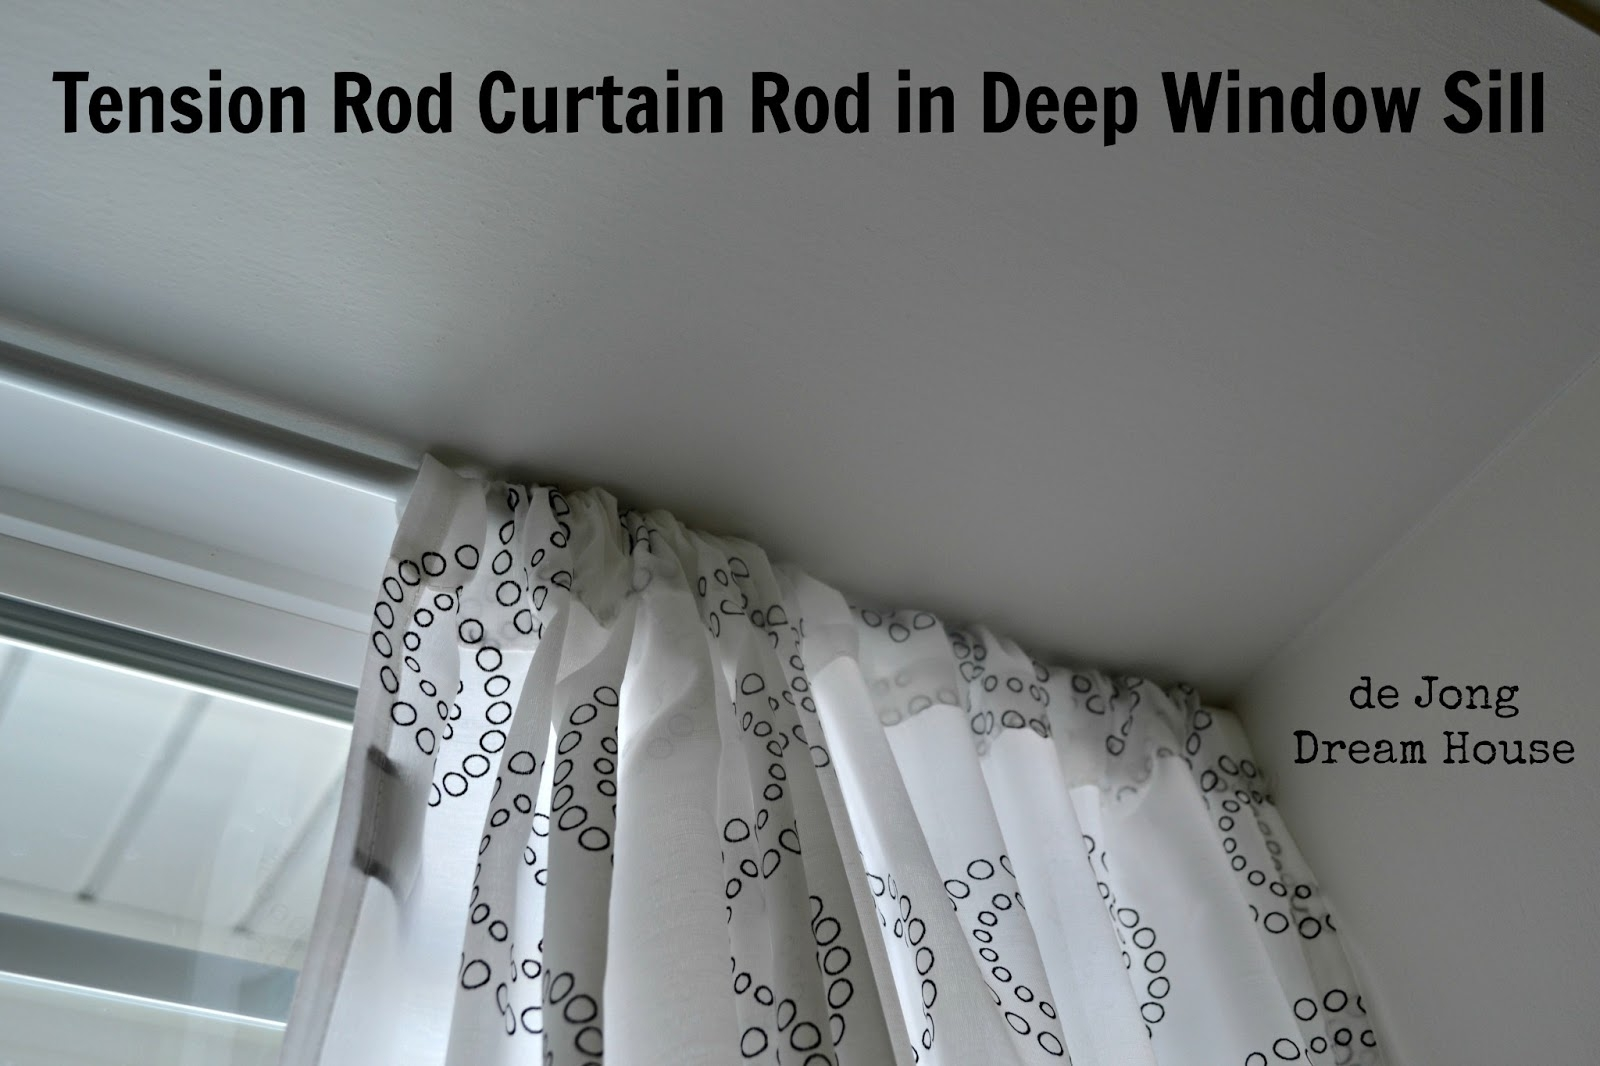 De Jong Dream House Uses For Tension Rods Within Spring Loaded Curtain Poles (Image 3 of 25)